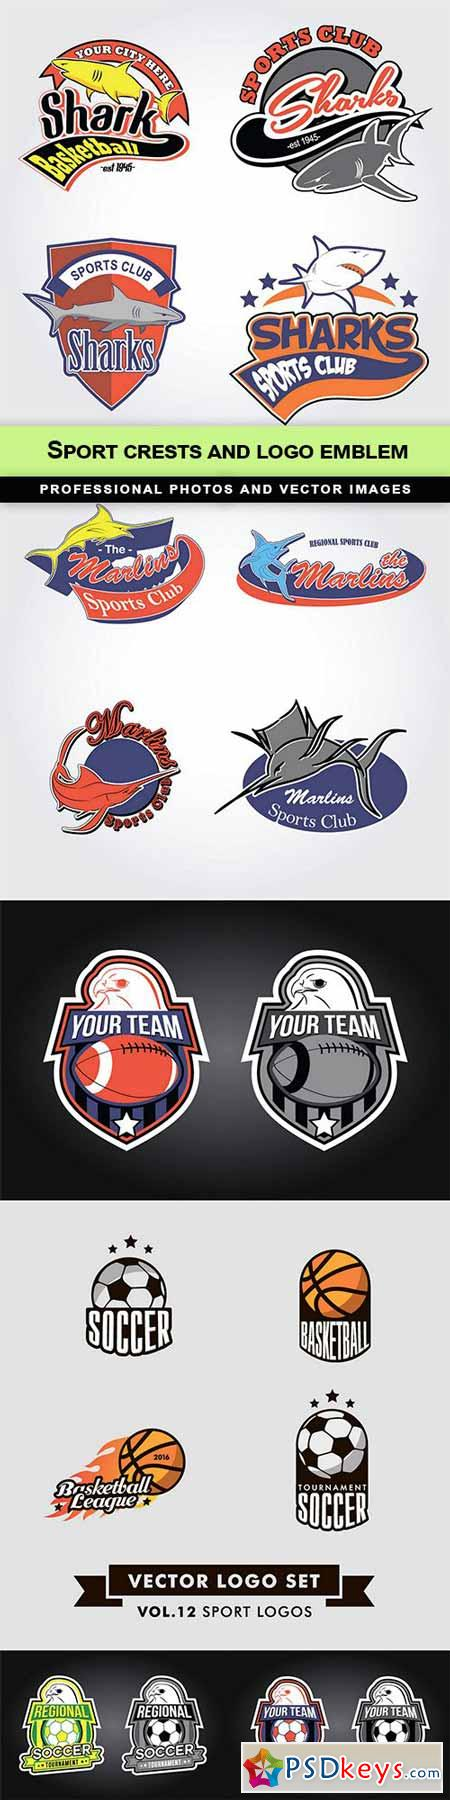 Sport crests and logo emblem - 6 EPS